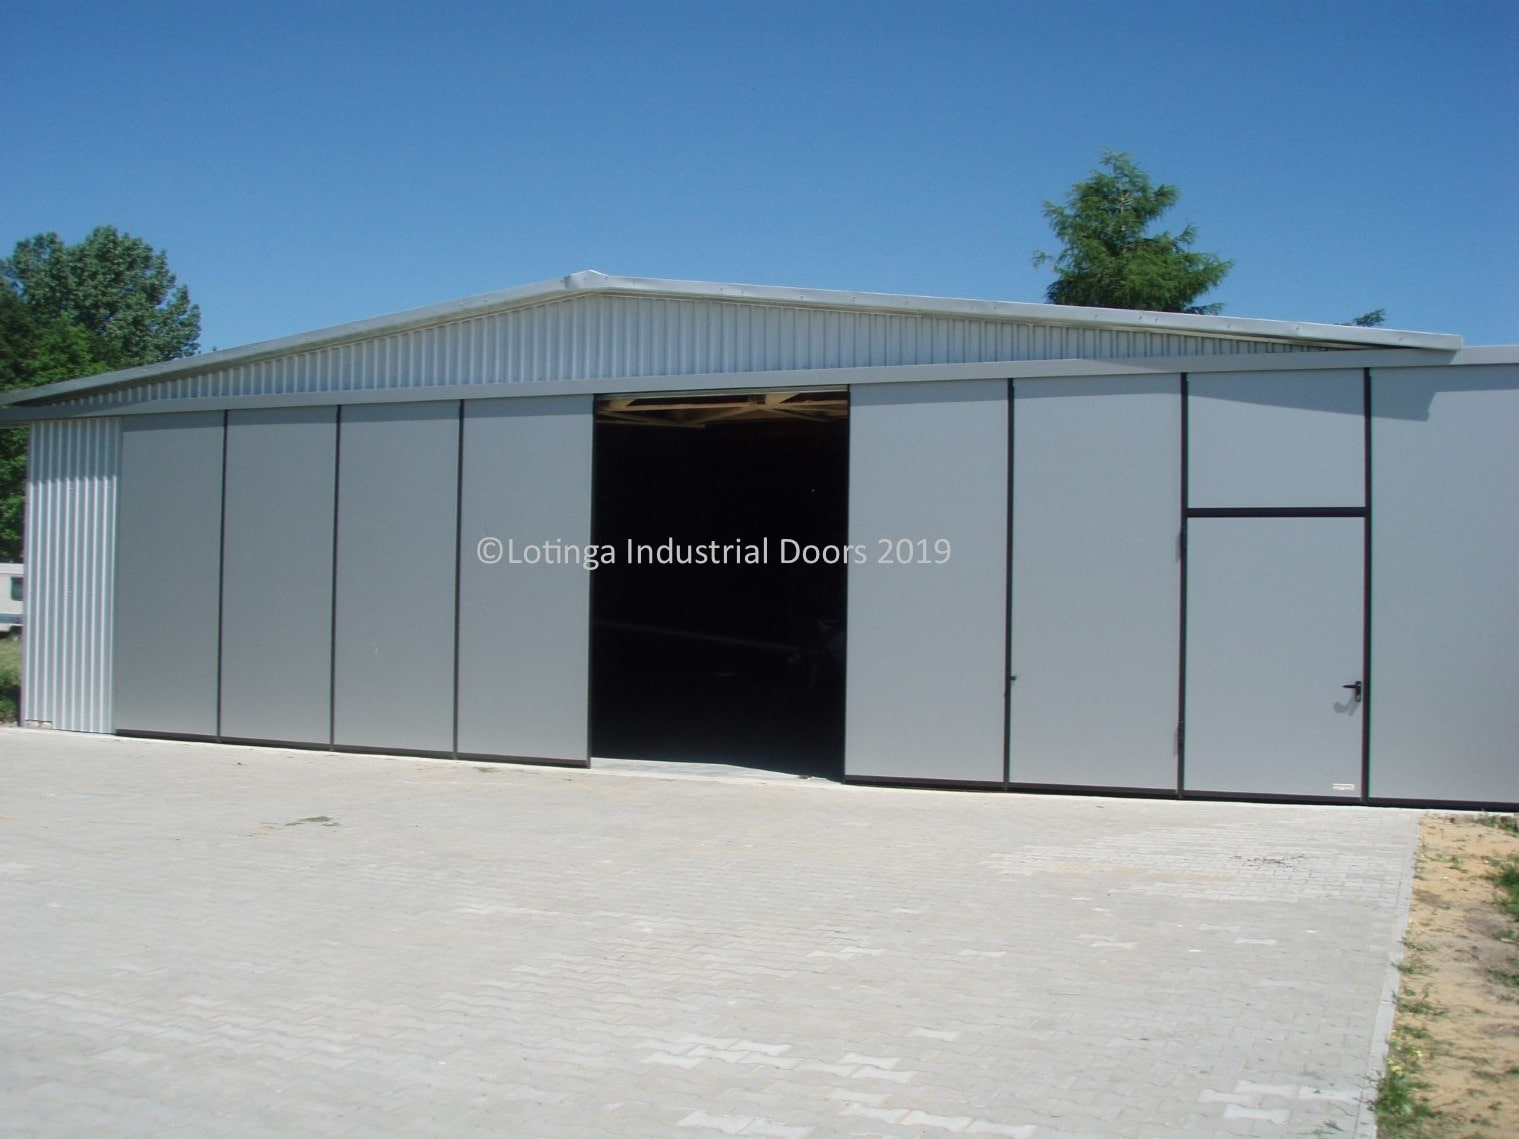 flux-bi-folding-doors-min Industrial Sliding and Folding Doors